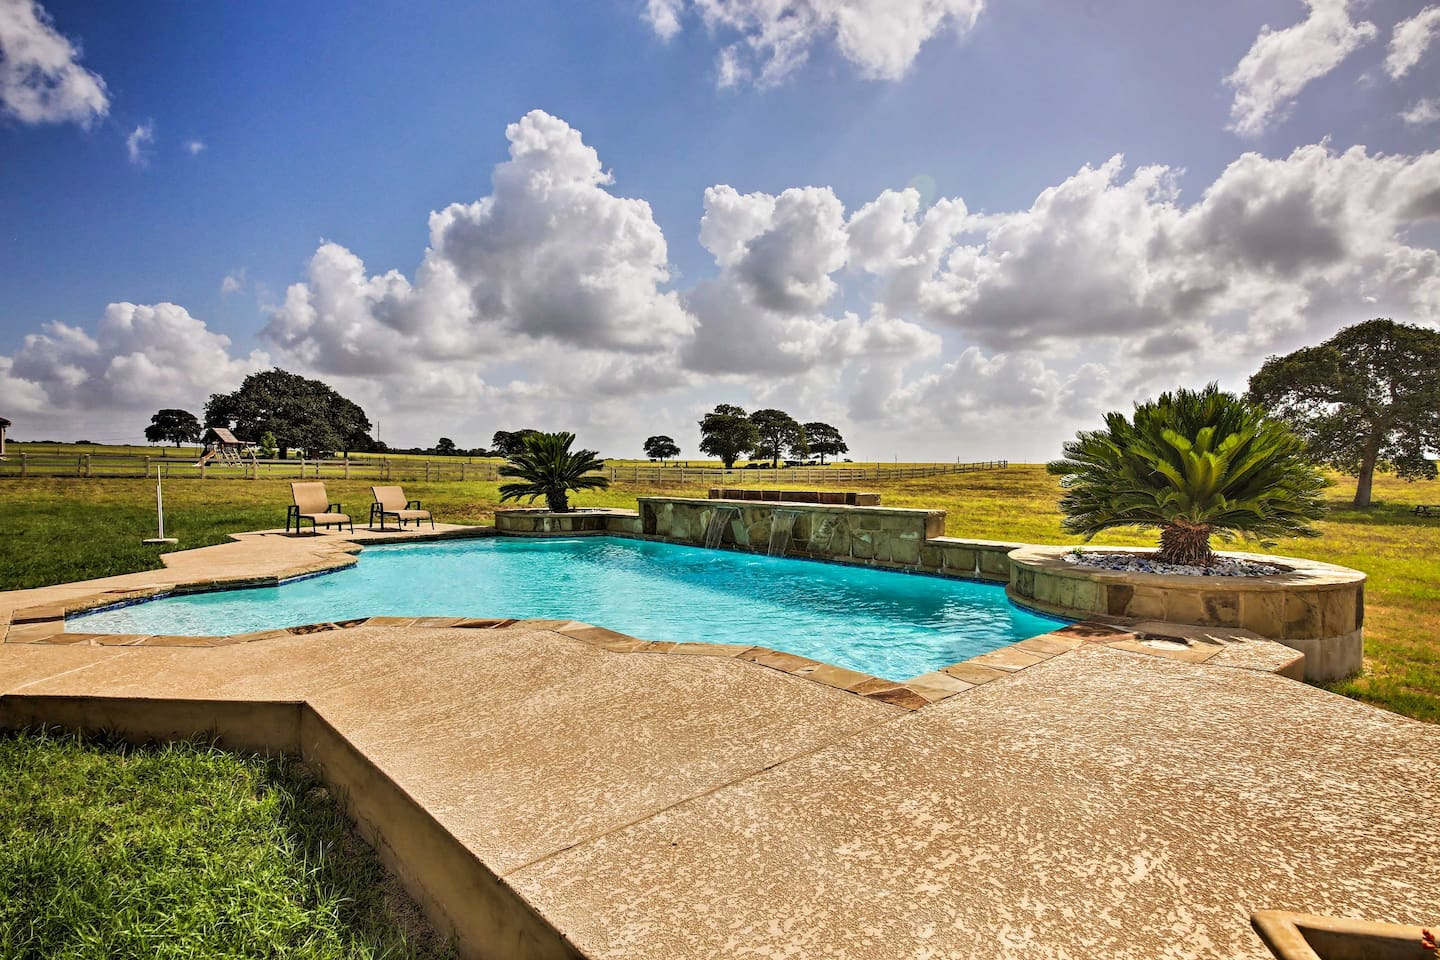 Swim laps in the private pool at this La Vernia vacation rental house.